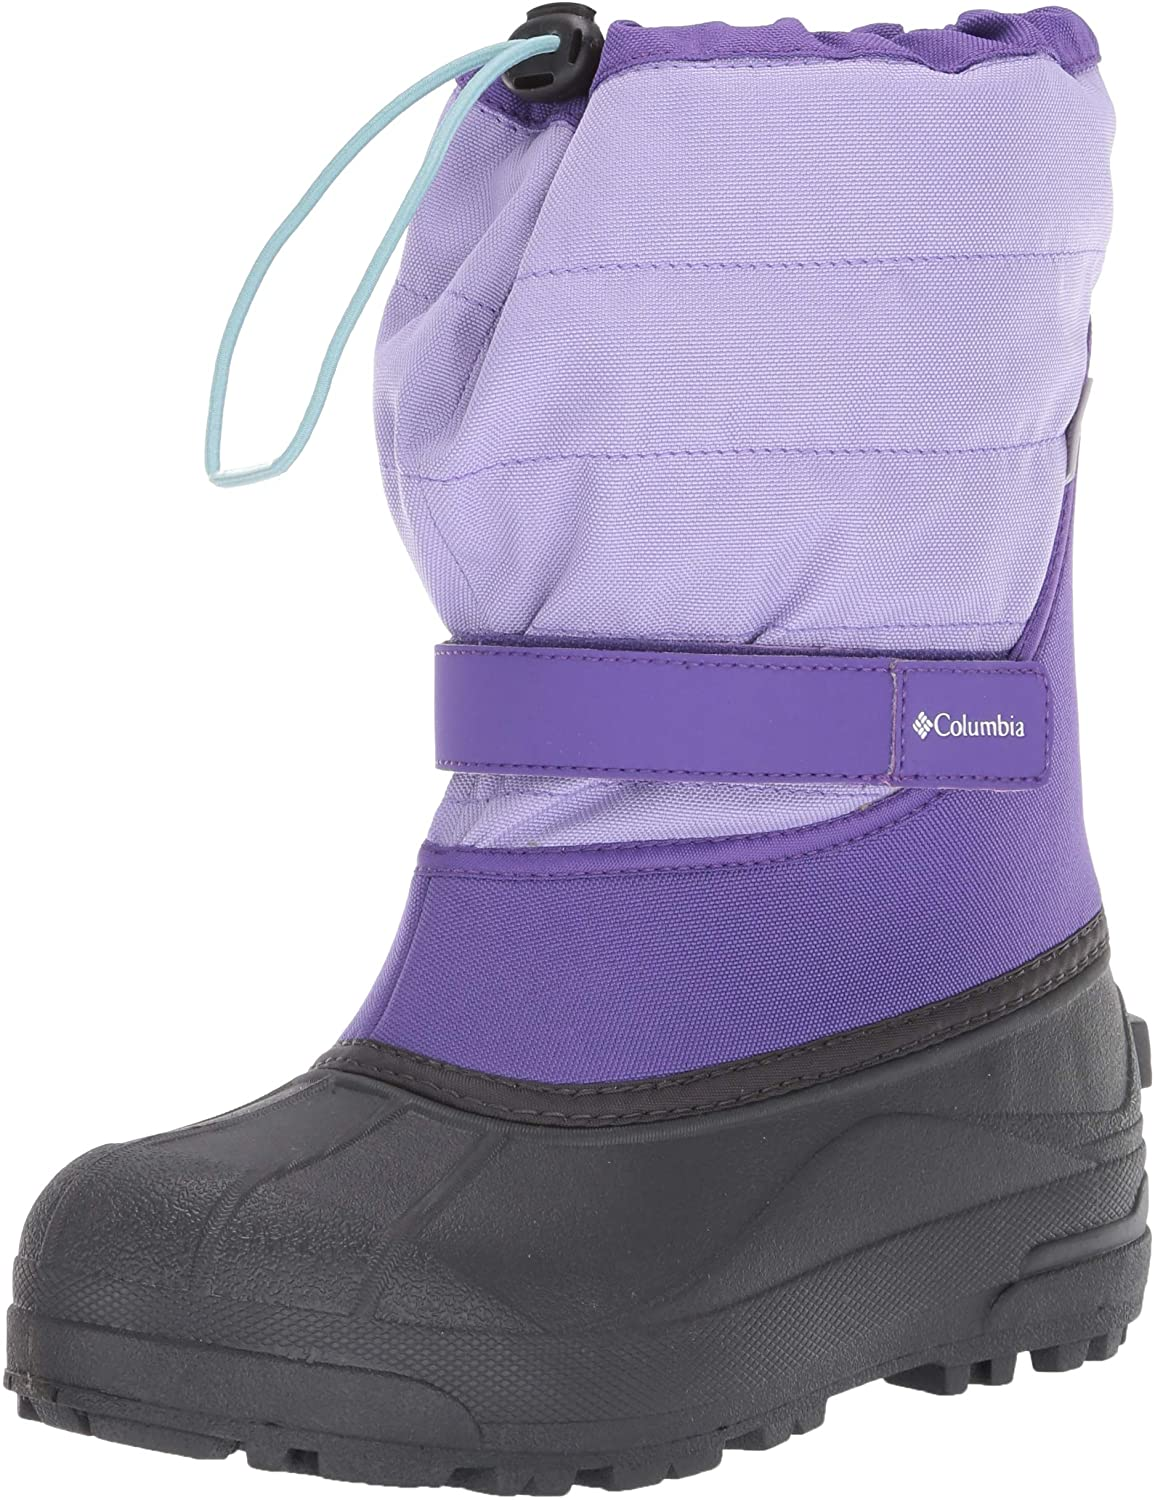 Columbia 2021new shipping free shipping New Orleans Mall Unisex-Child Powderbug Plus Boot Ii Snow